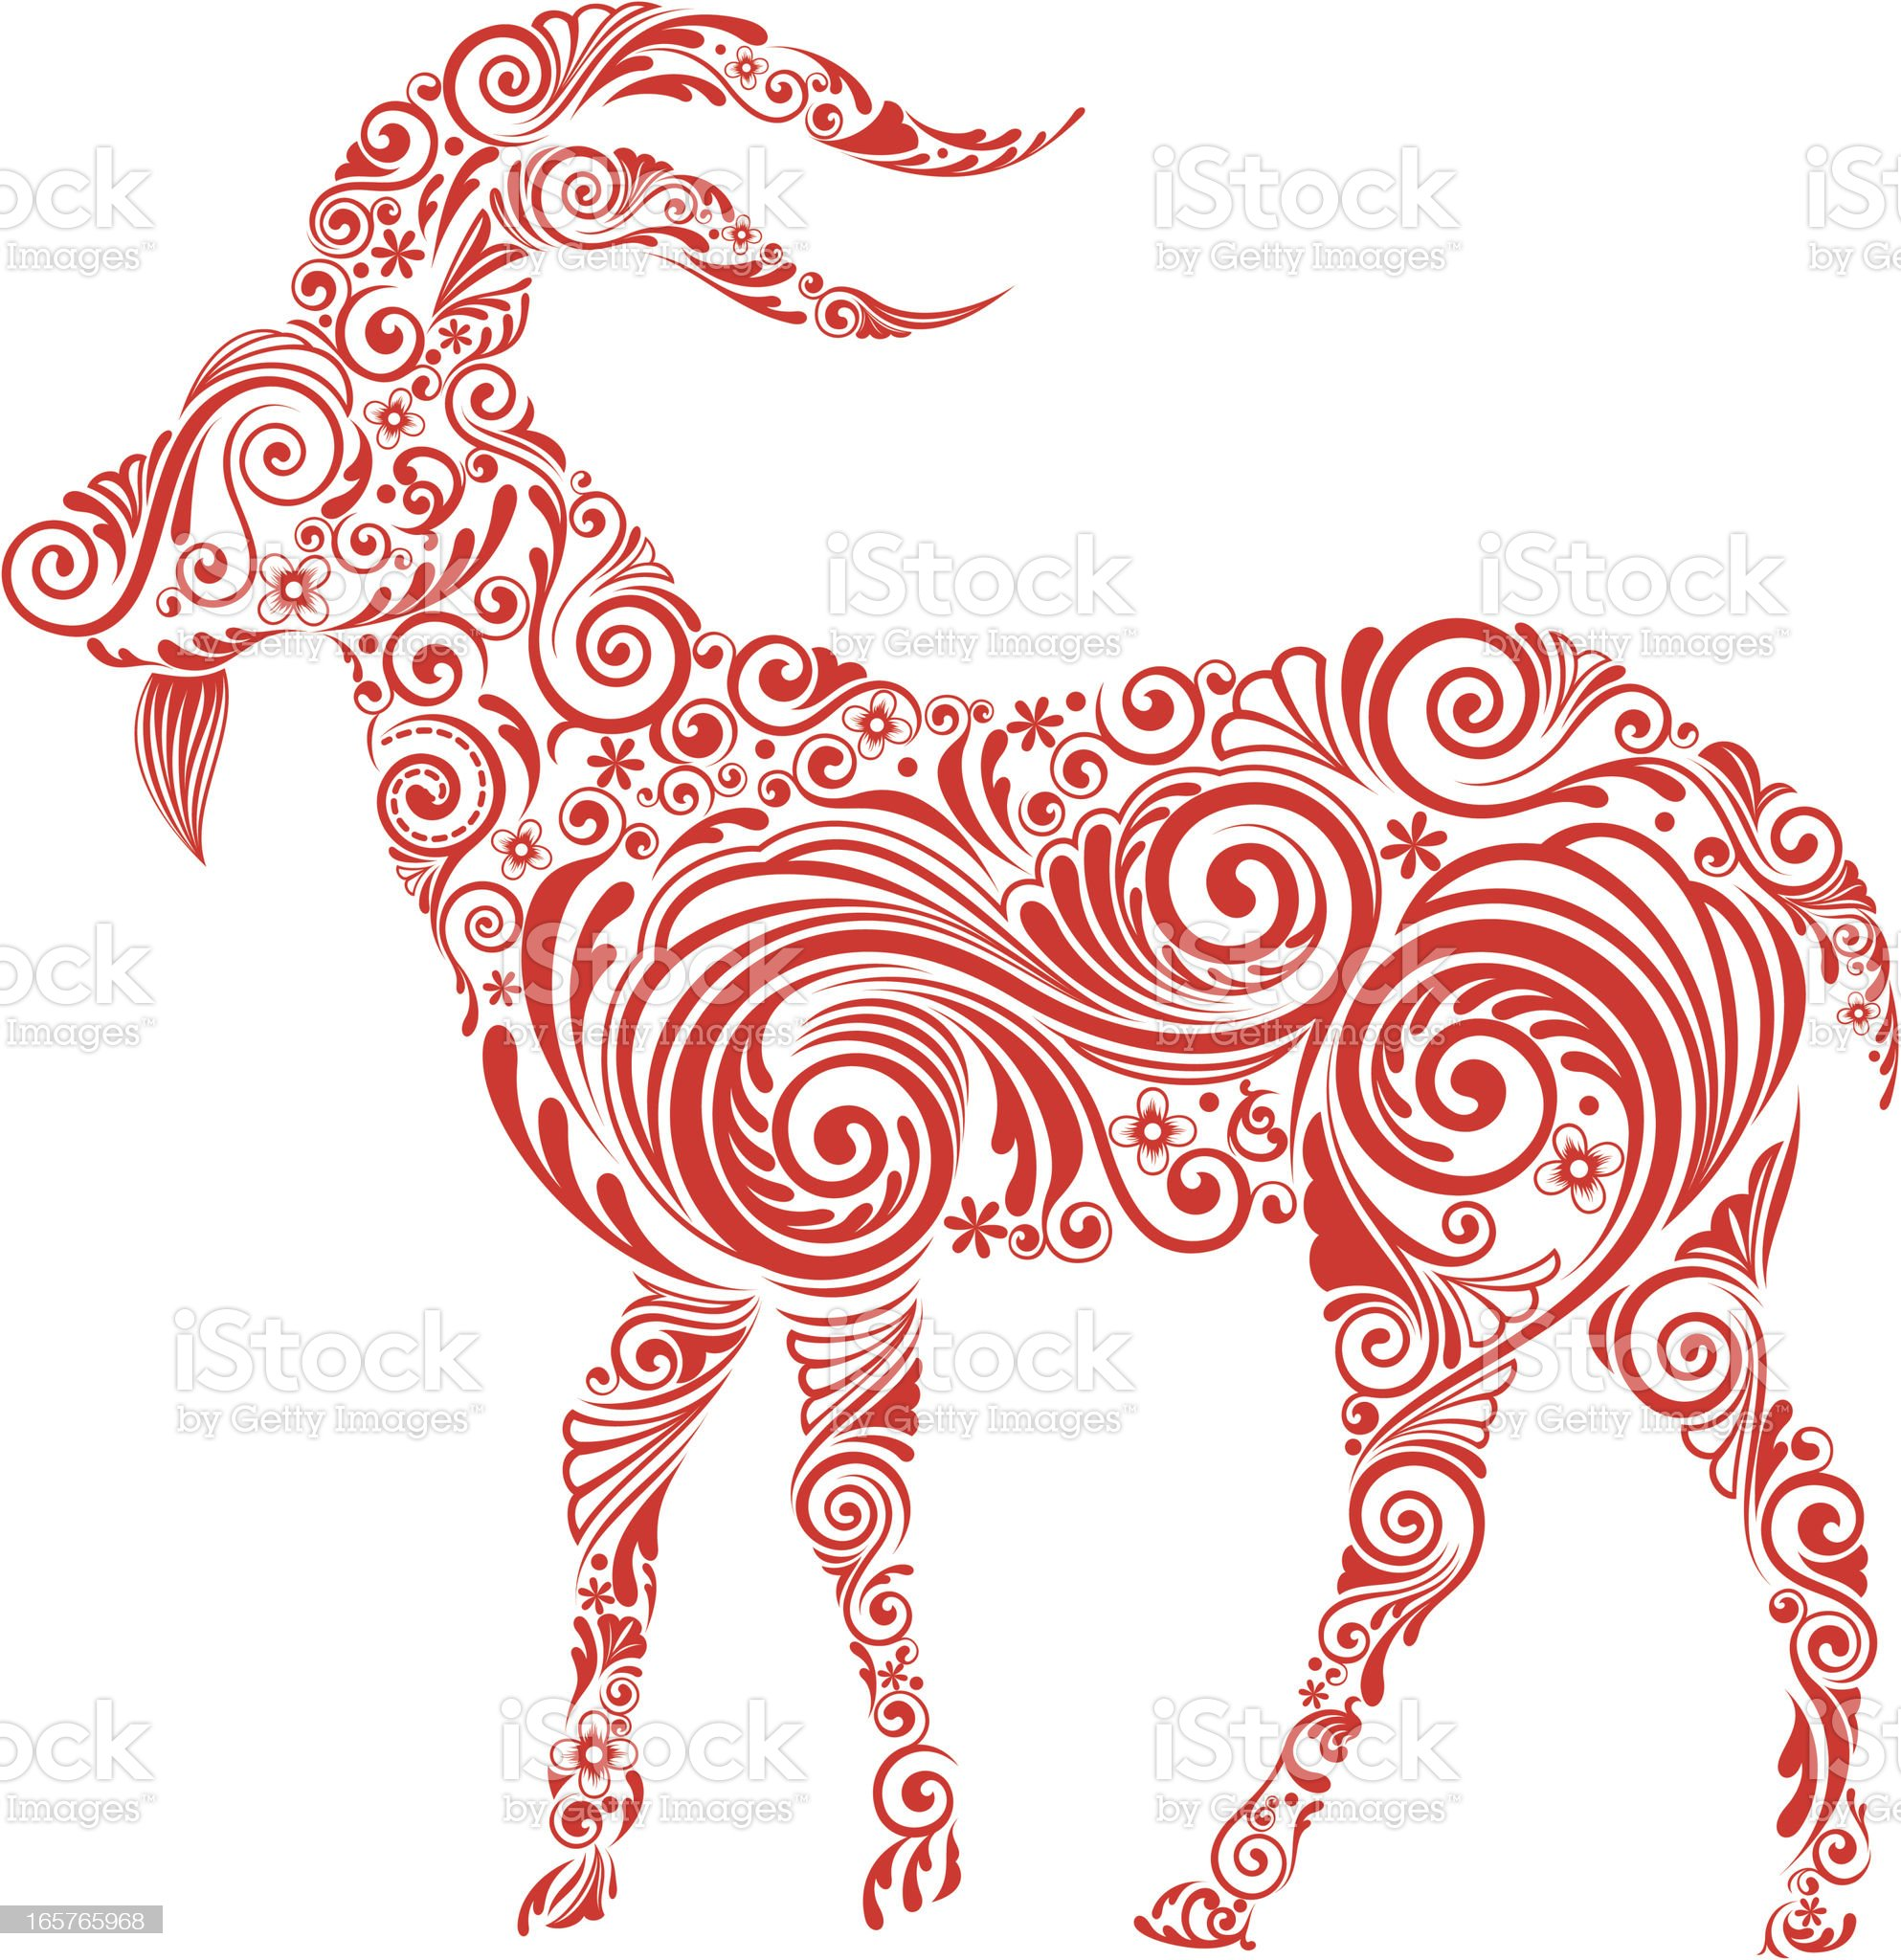 A red swirly design of a goat on a white background royalty-free stock vector art